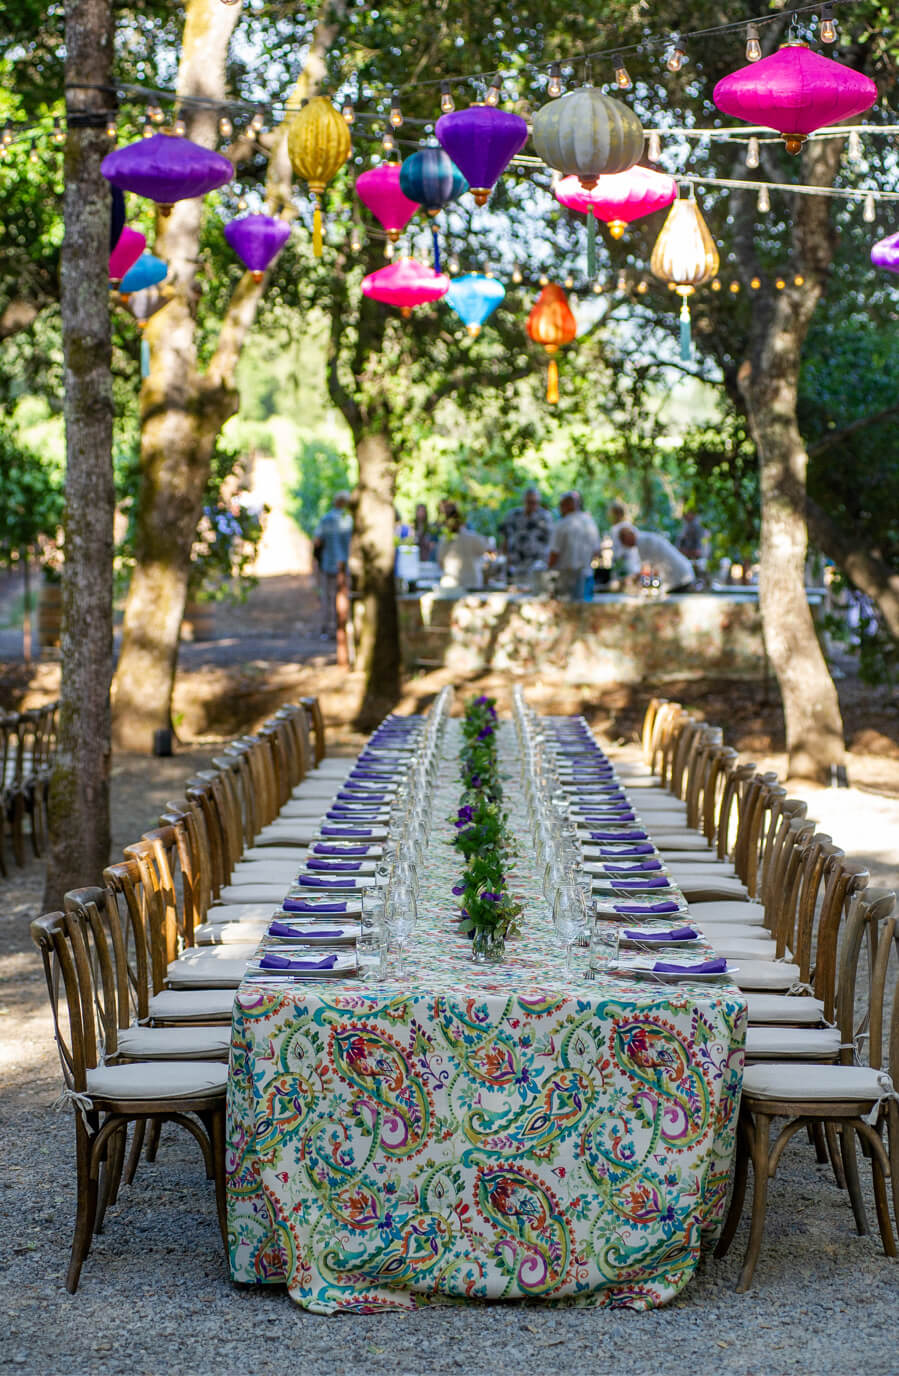 Outdoor table setting.